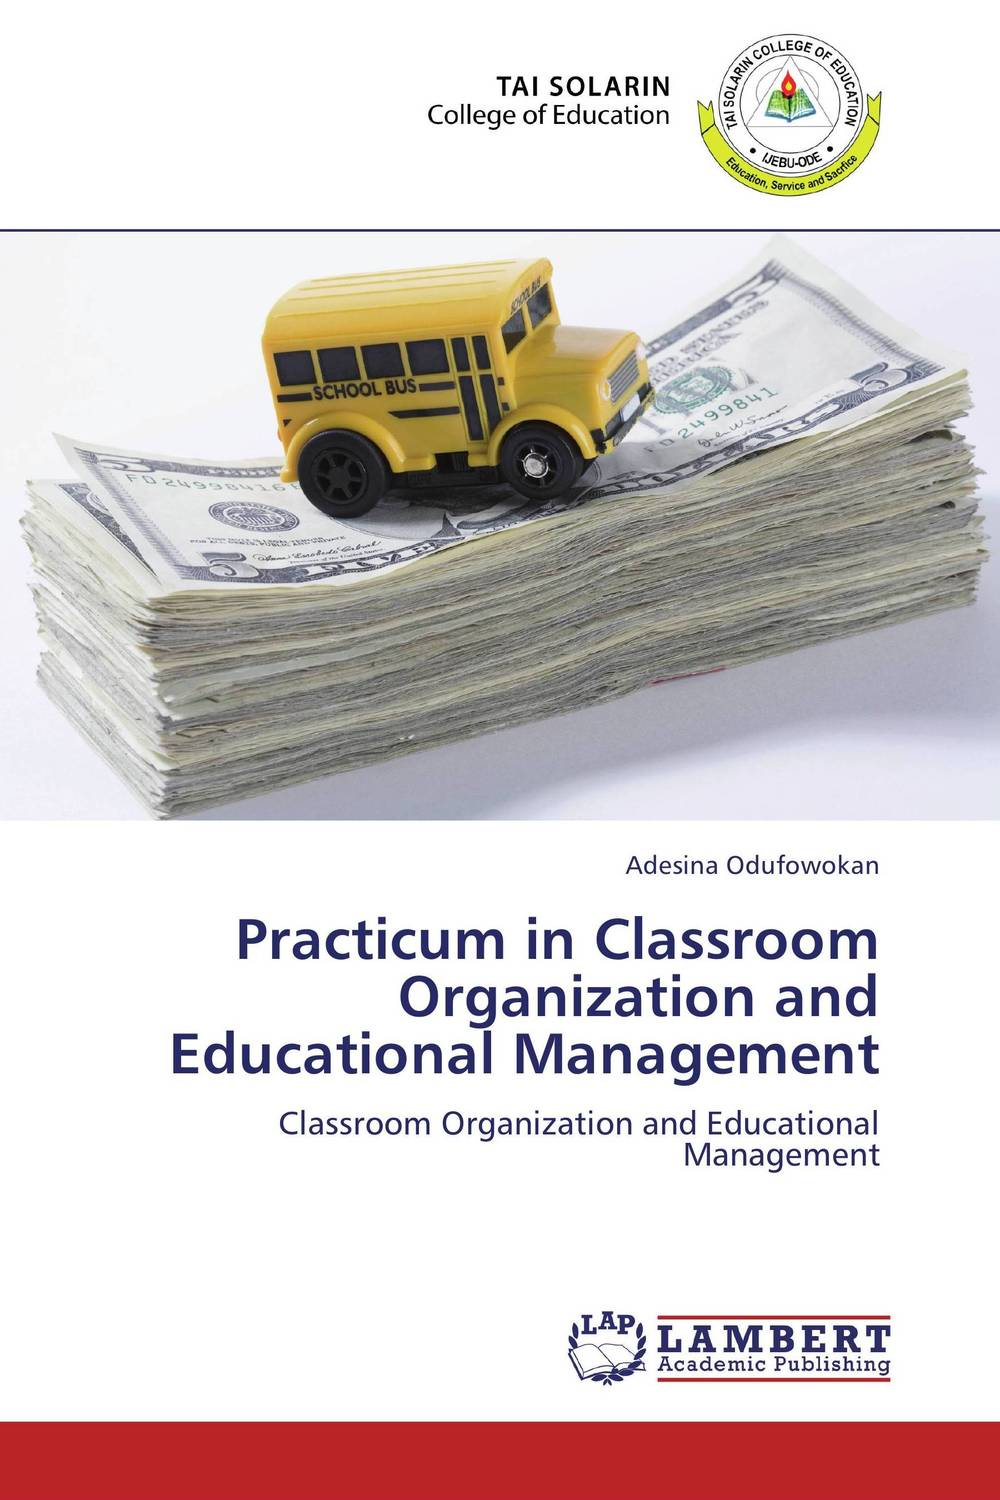 Practicum in Classroom Organization and Educational Management